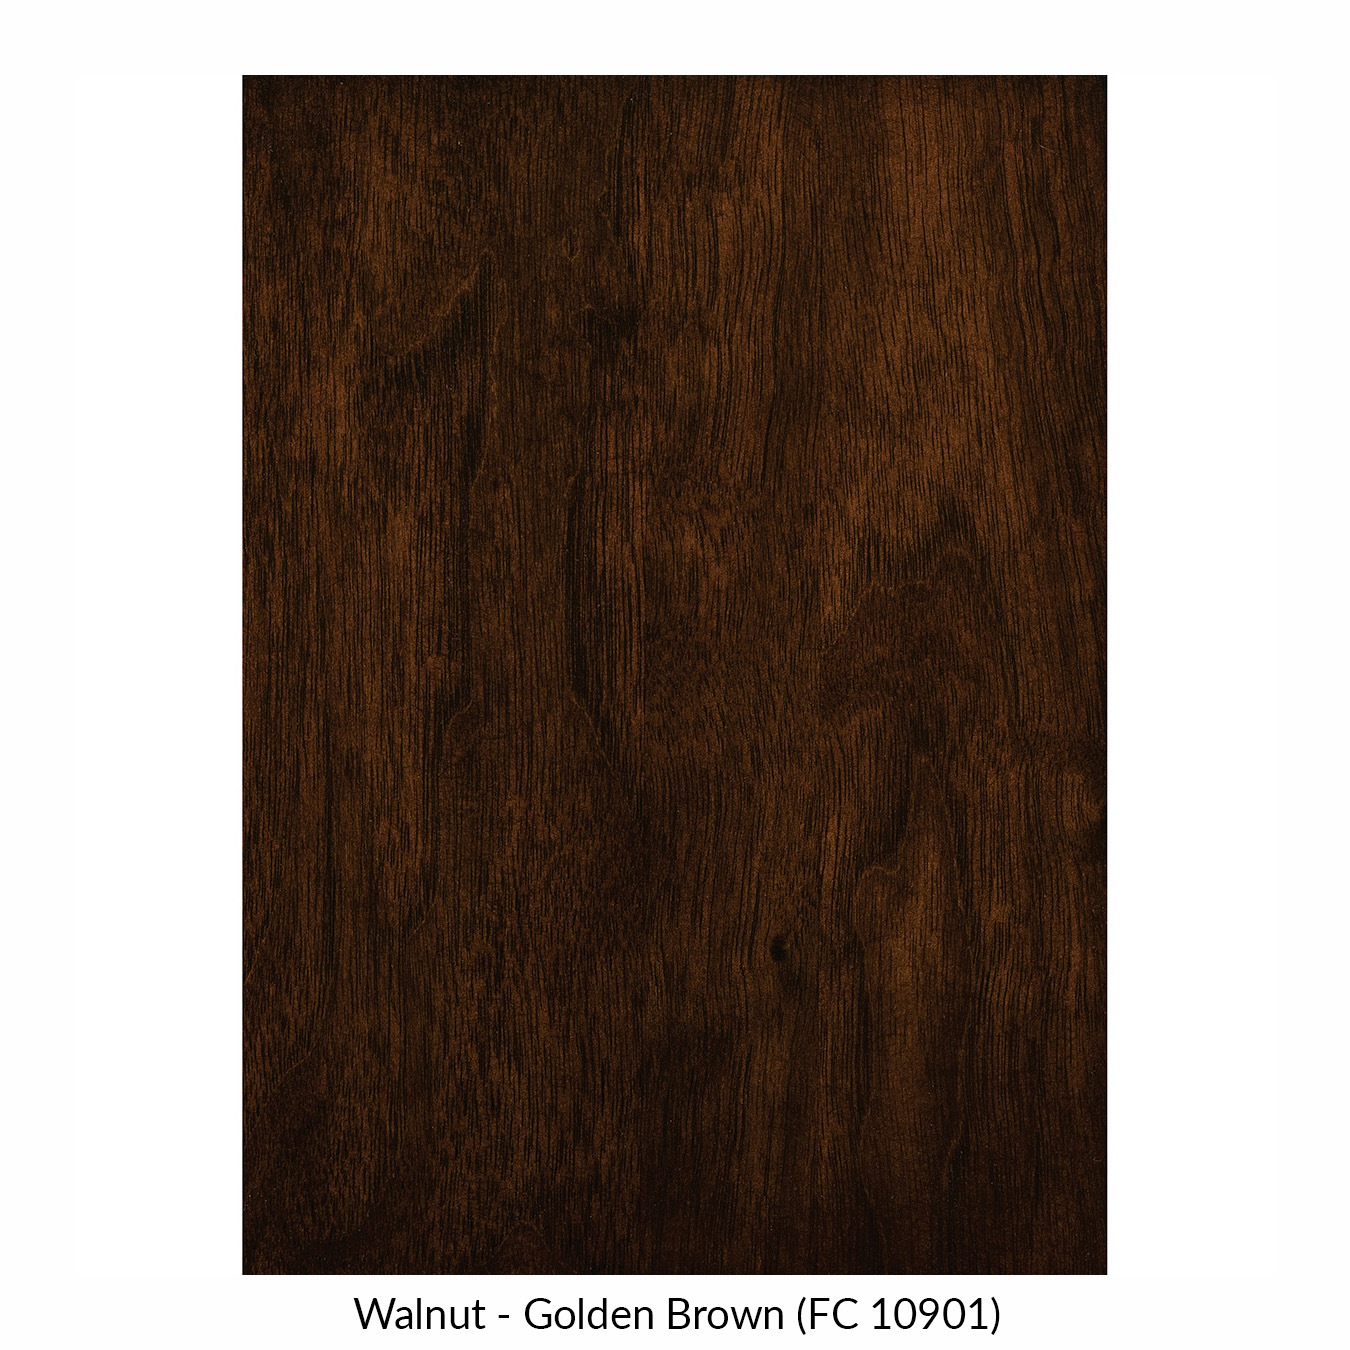 spectrum-walnut-golden-brown-fc-10901.jpg